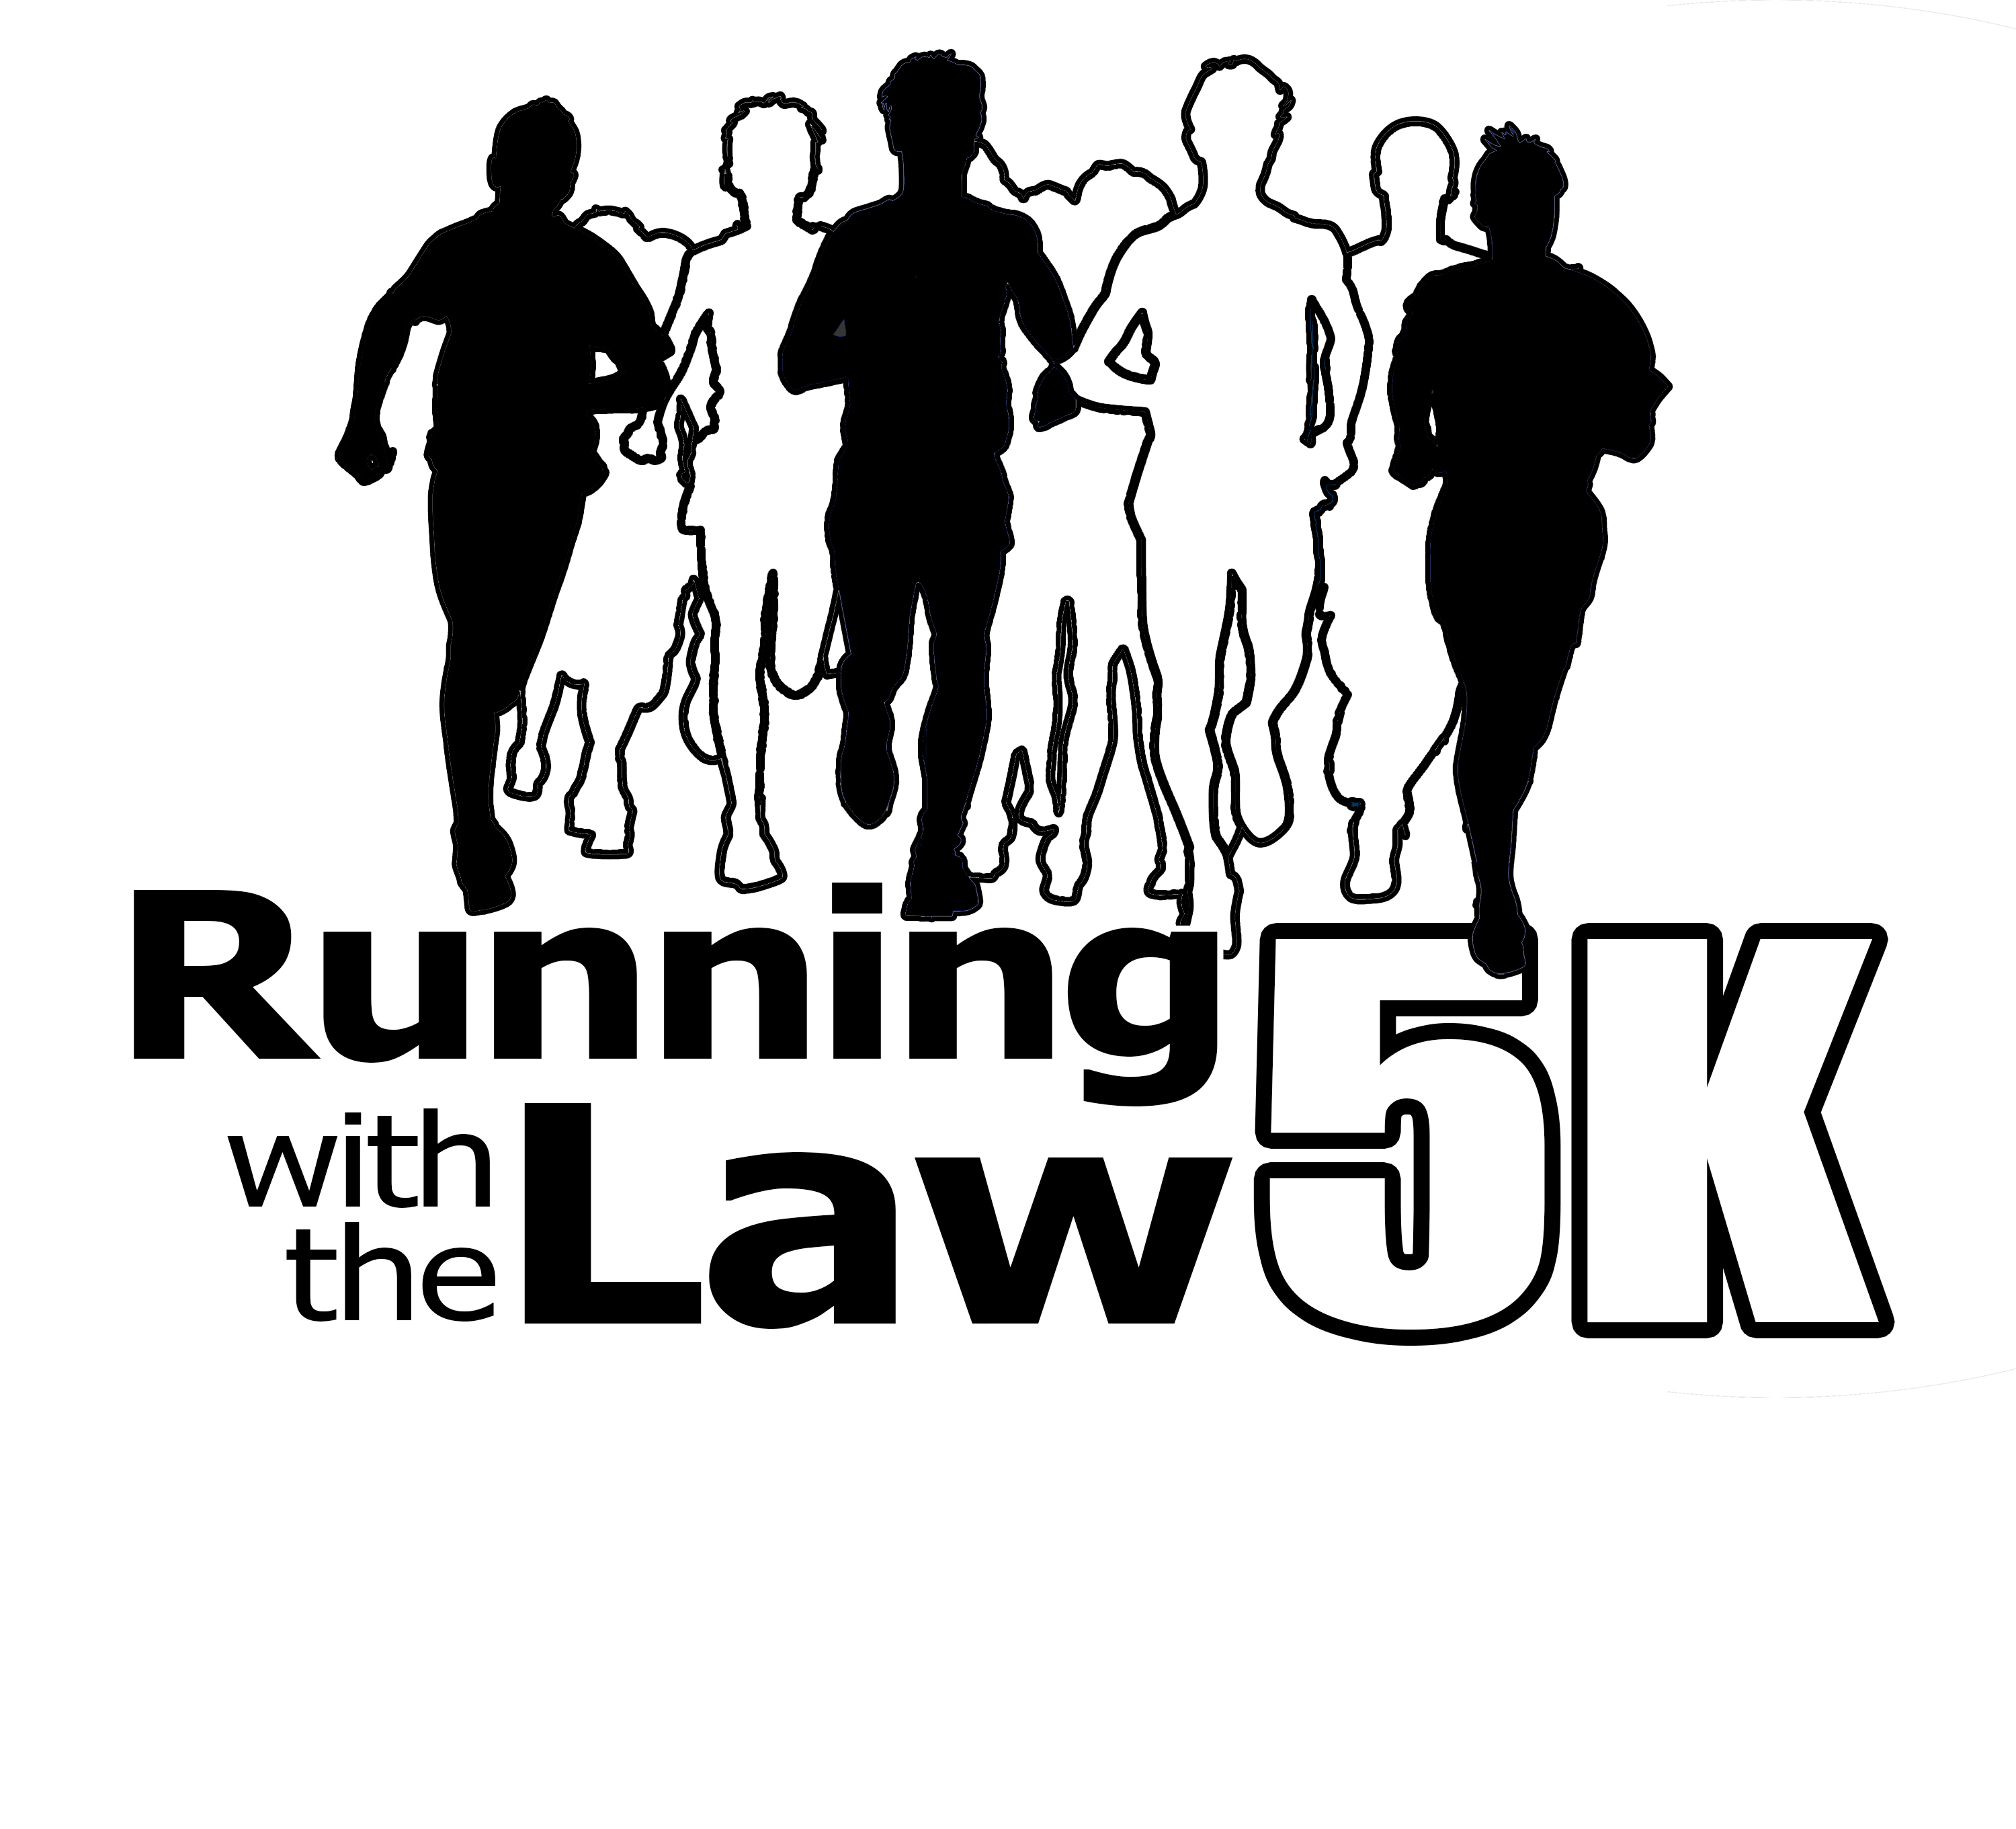 Running With The Law 5K logo